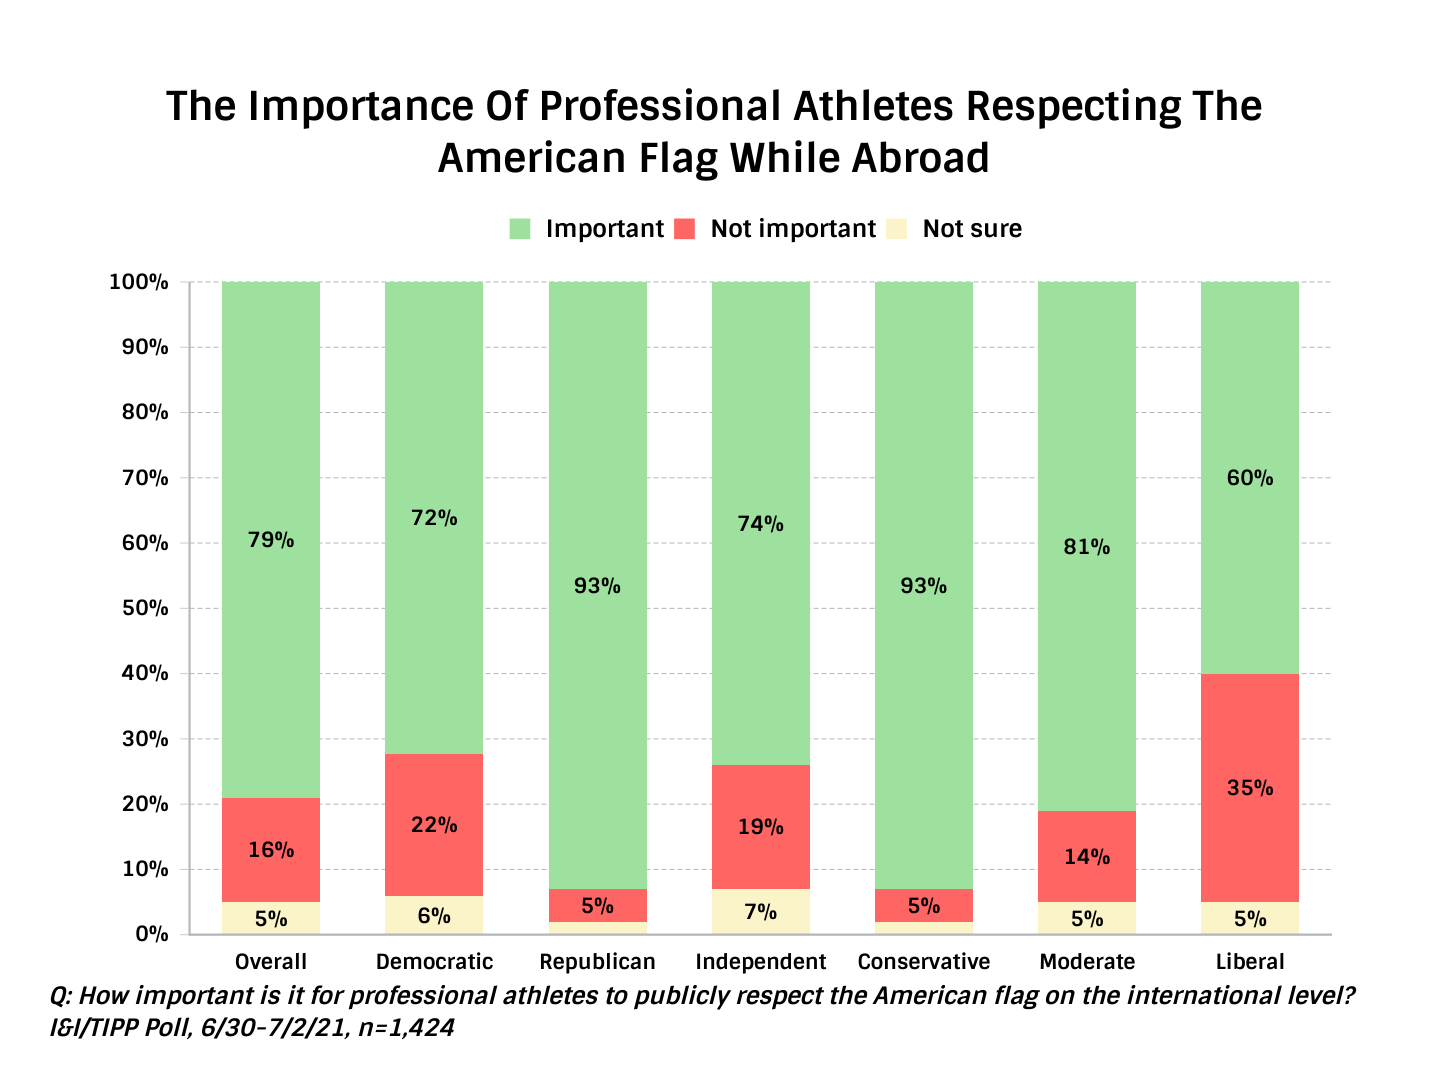 TIPP Poll Results: The Importance of Professional Athletes Respecting The American Flag While Abroad by Party and Ideology